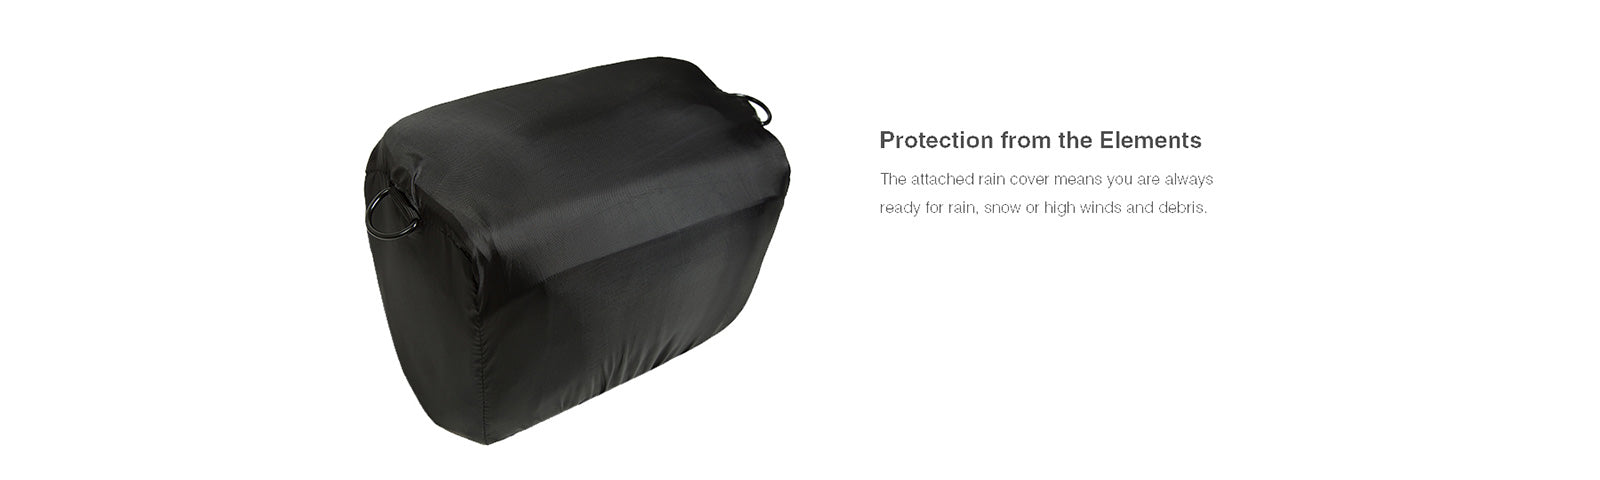 https://www.bagsmartbags.com/products/compact-camera-shoulder-bag-for-slr-dslr-with-waterproof-rain-cover